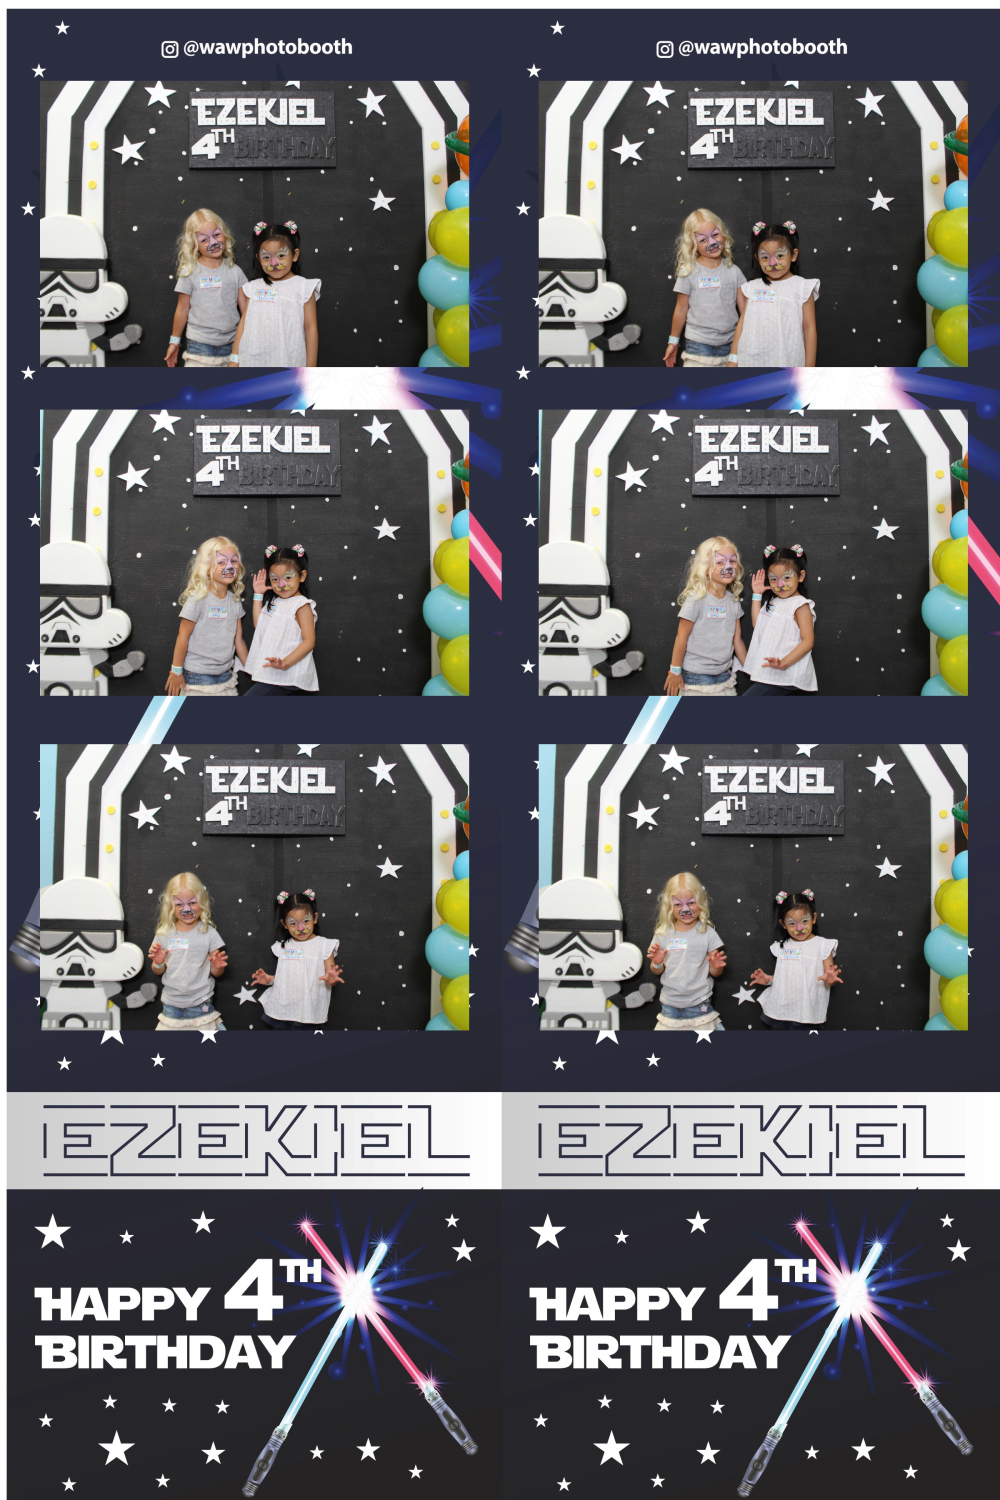 waw photobooth photo booth pernikahan